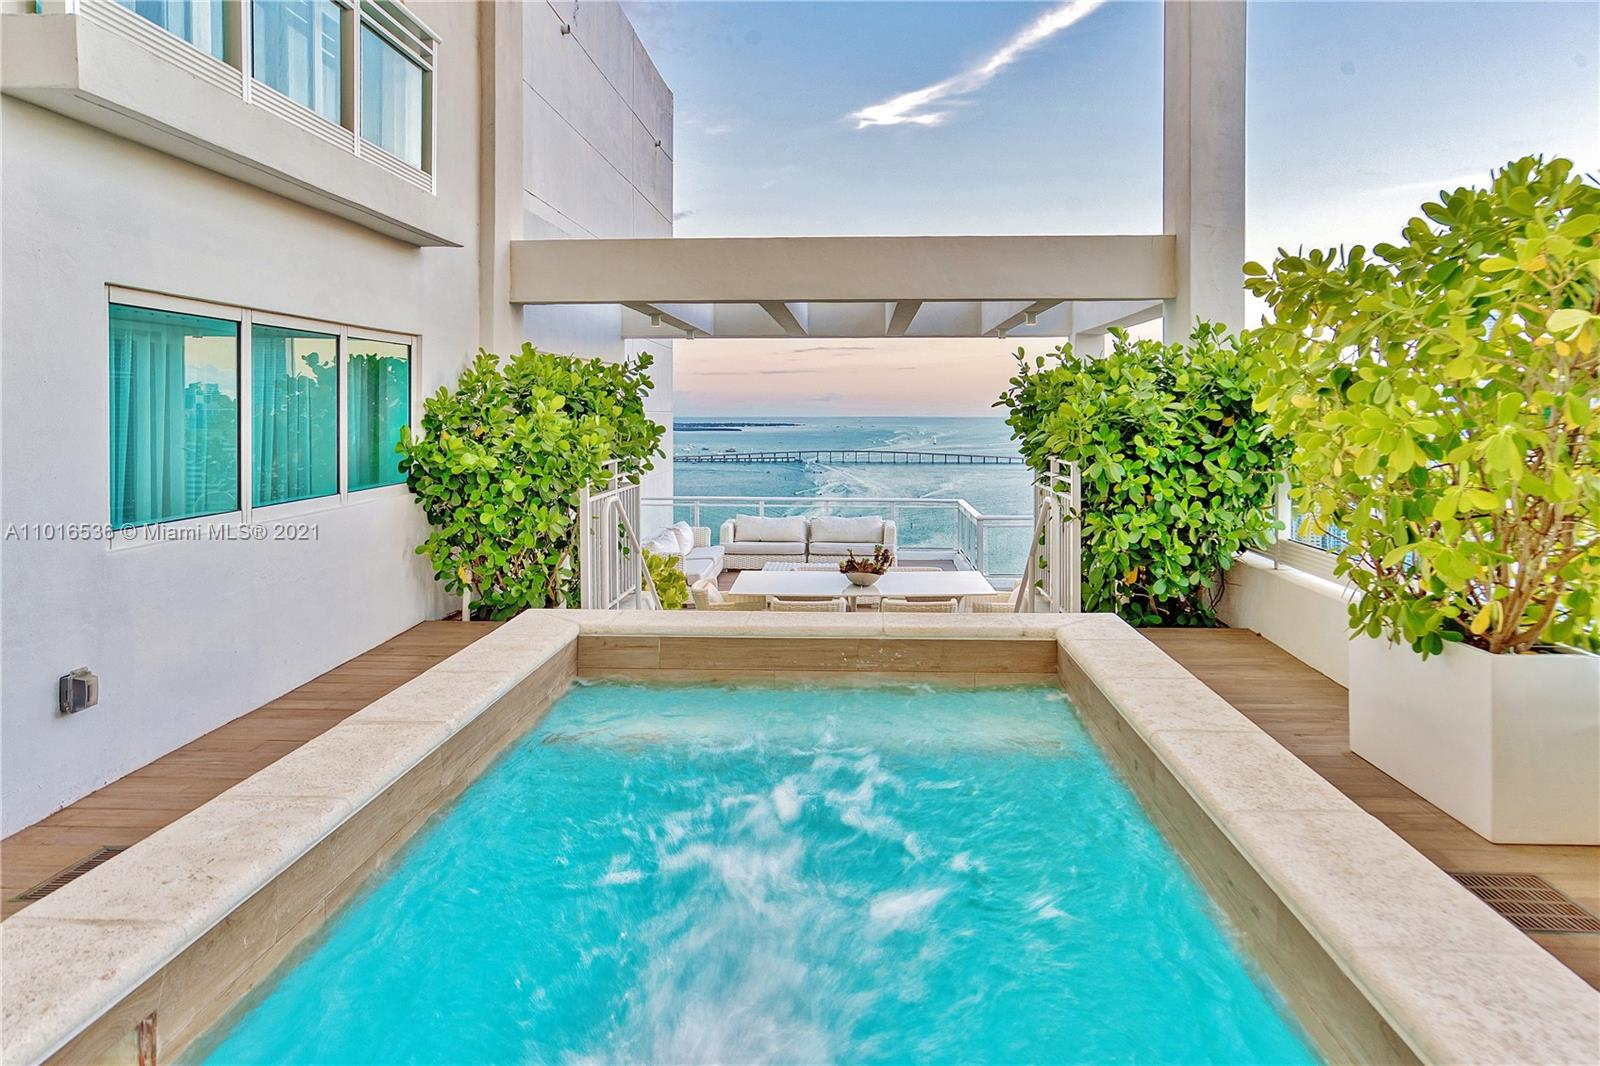 PENTHOUSE FOUR (Top 3 Floors) at Asia on Brickell Key w/ $450K of designer furnishings from Artefacto. Your Tri-level Dream PENTHOUSE at Asia, the Island's Premier Luxury Building, has over 7,300 SQFT of (interior 5,359 / exterior 1,946) living space w/ soaring high ceilings, a Gourmet Kitchen, European Oak Wood Floors, a Secluded Top Floor Master Suite, 4 Premium Parking Spaces, a Private Fingerprint Elevator to the unit & an Interior Elevator. Your HOME IN THE SKY has 270 degree breathtaking Bay, Brickell, Downtown & the Ocean views from Seven Terraces, one which features a Private Rooftop Pool & Wet Bar. Live on an exclusive Island Oasis w/ parks, the 5 Star Mandarin Oriental, a Marketplace, Restaurants, & is steps away from Miami's Brickell/Downtown Financial & Entertainment District.